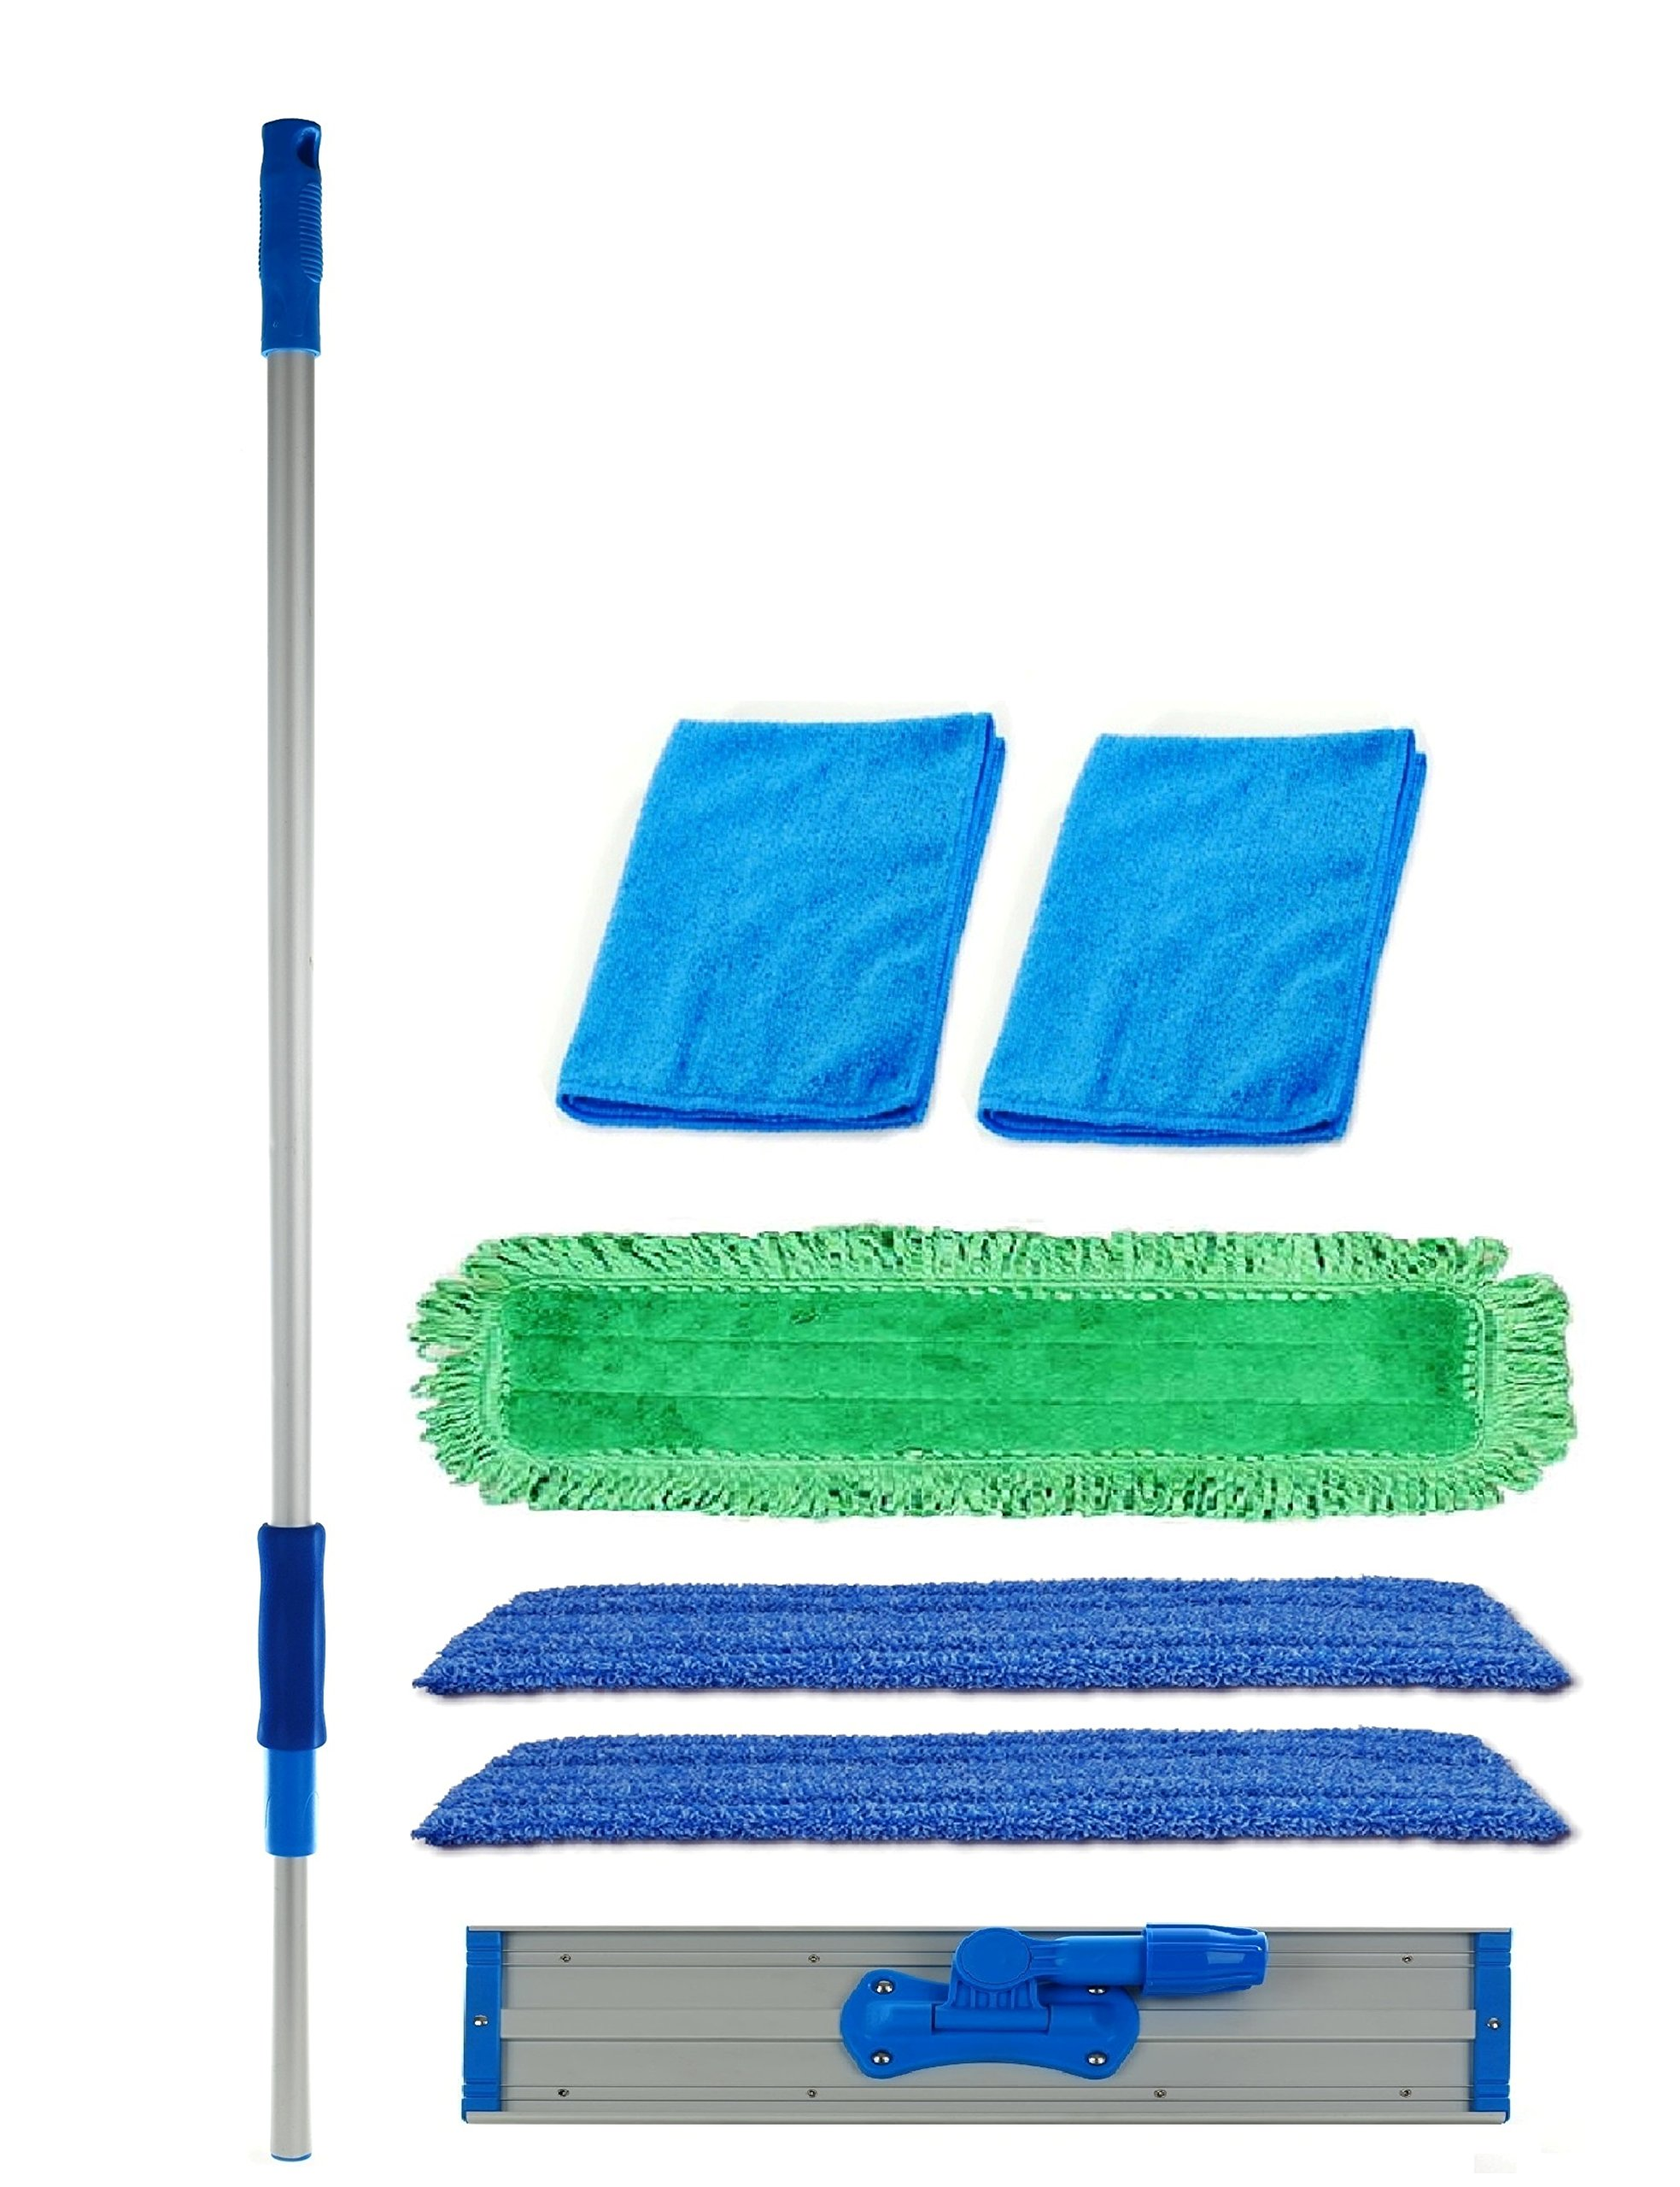 Real Clean 24 inch Commercial Microfiber Mop Kit by Real Clean